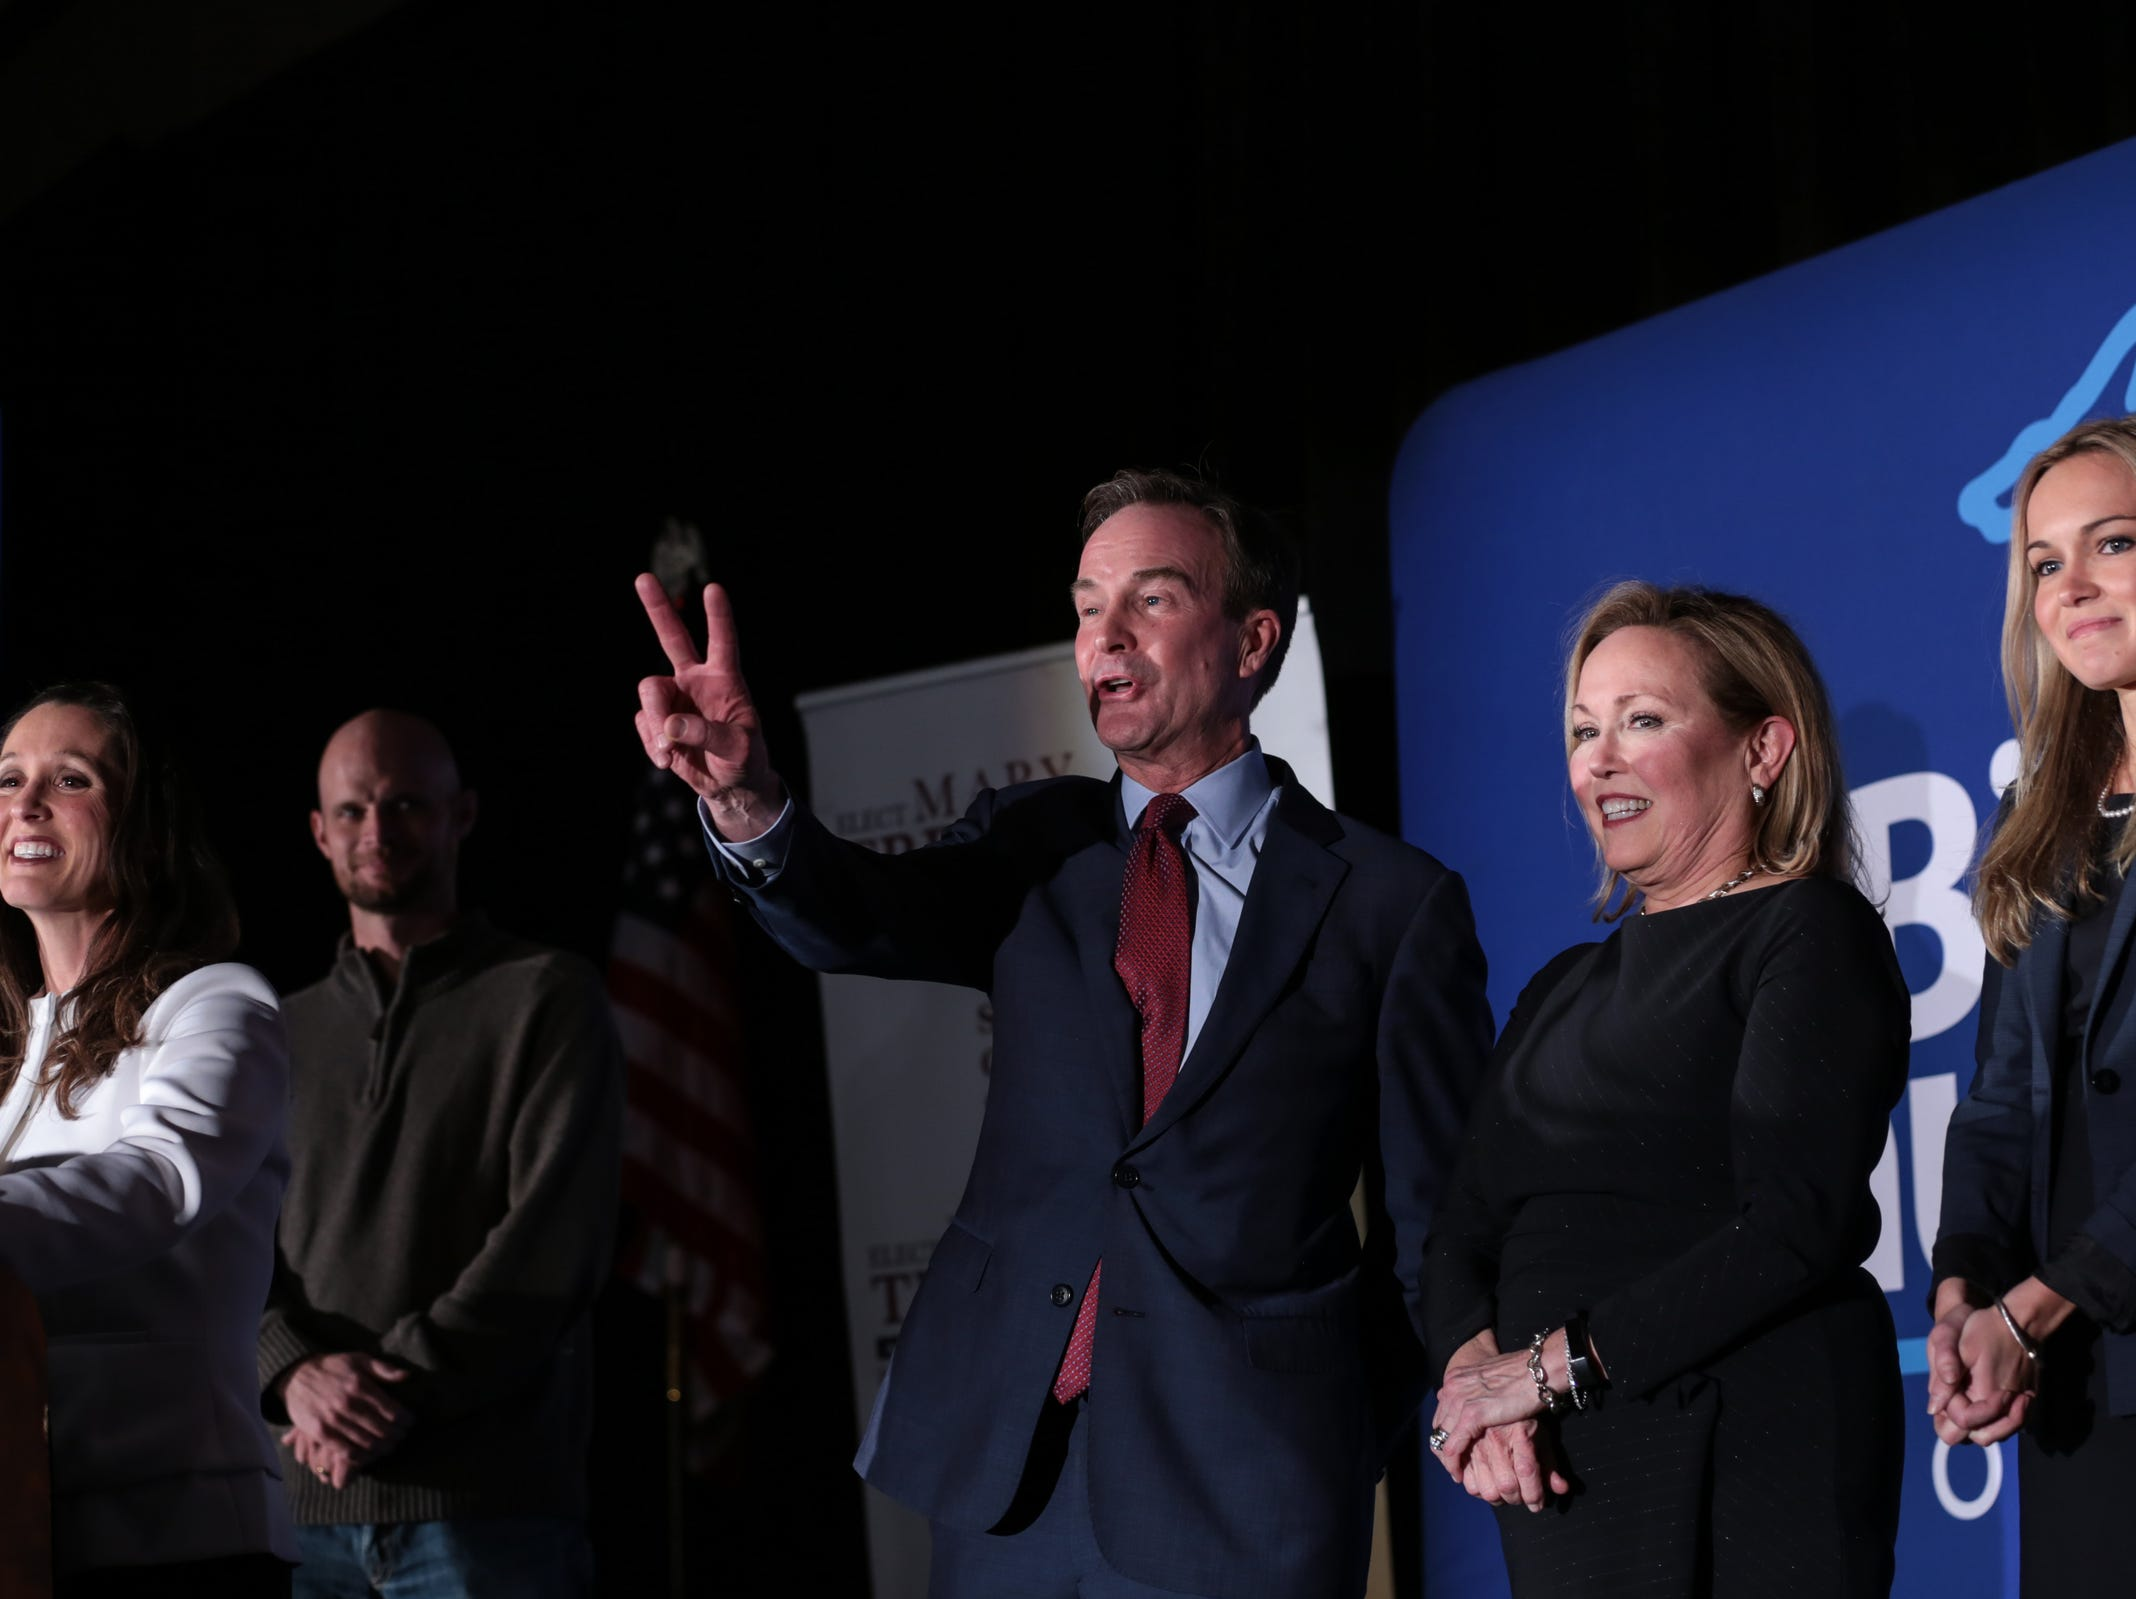 Republican gubernatorial candidate Bill Schuette signals for wanting two beers after losing in Michigan's midterm election during a Michigan Republican elections night party at the Lansing Center in Lansing on Tuesday, November 6, 2018.